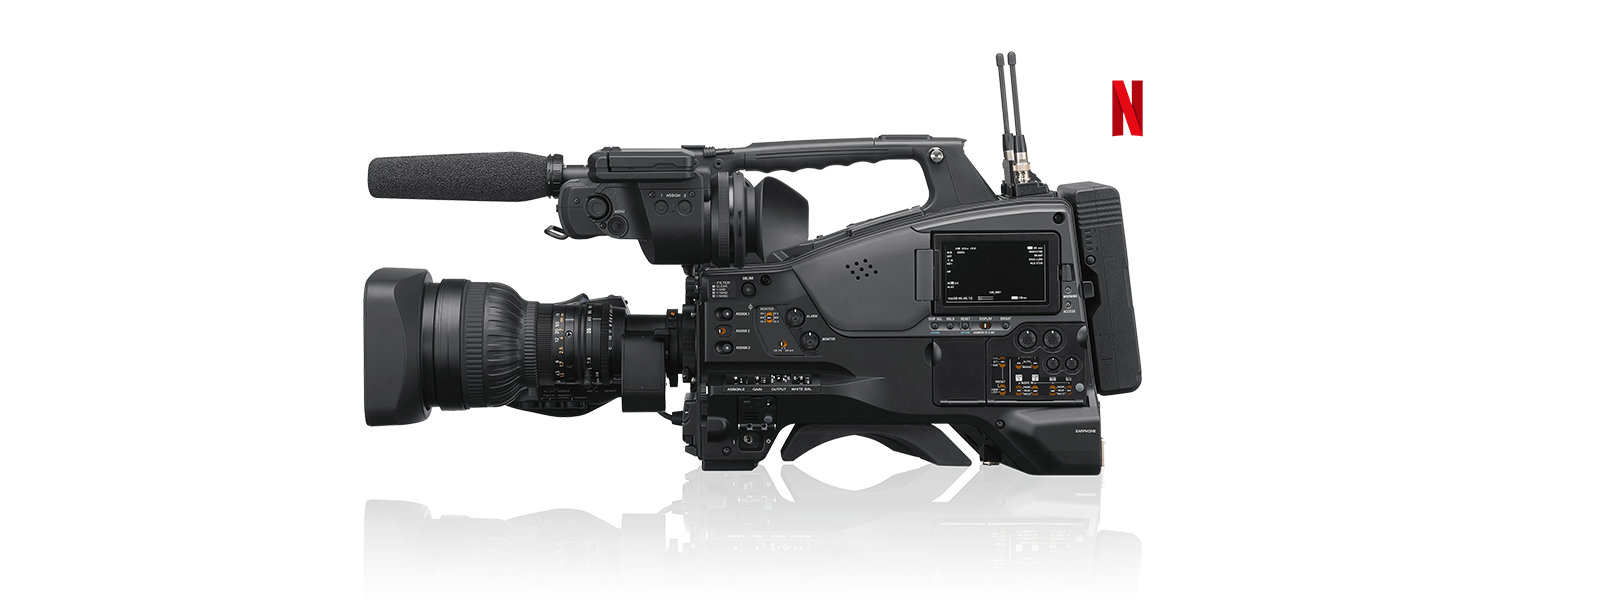 Caméra PXW-Z750 avec logo Netflix Post Technology Alliance